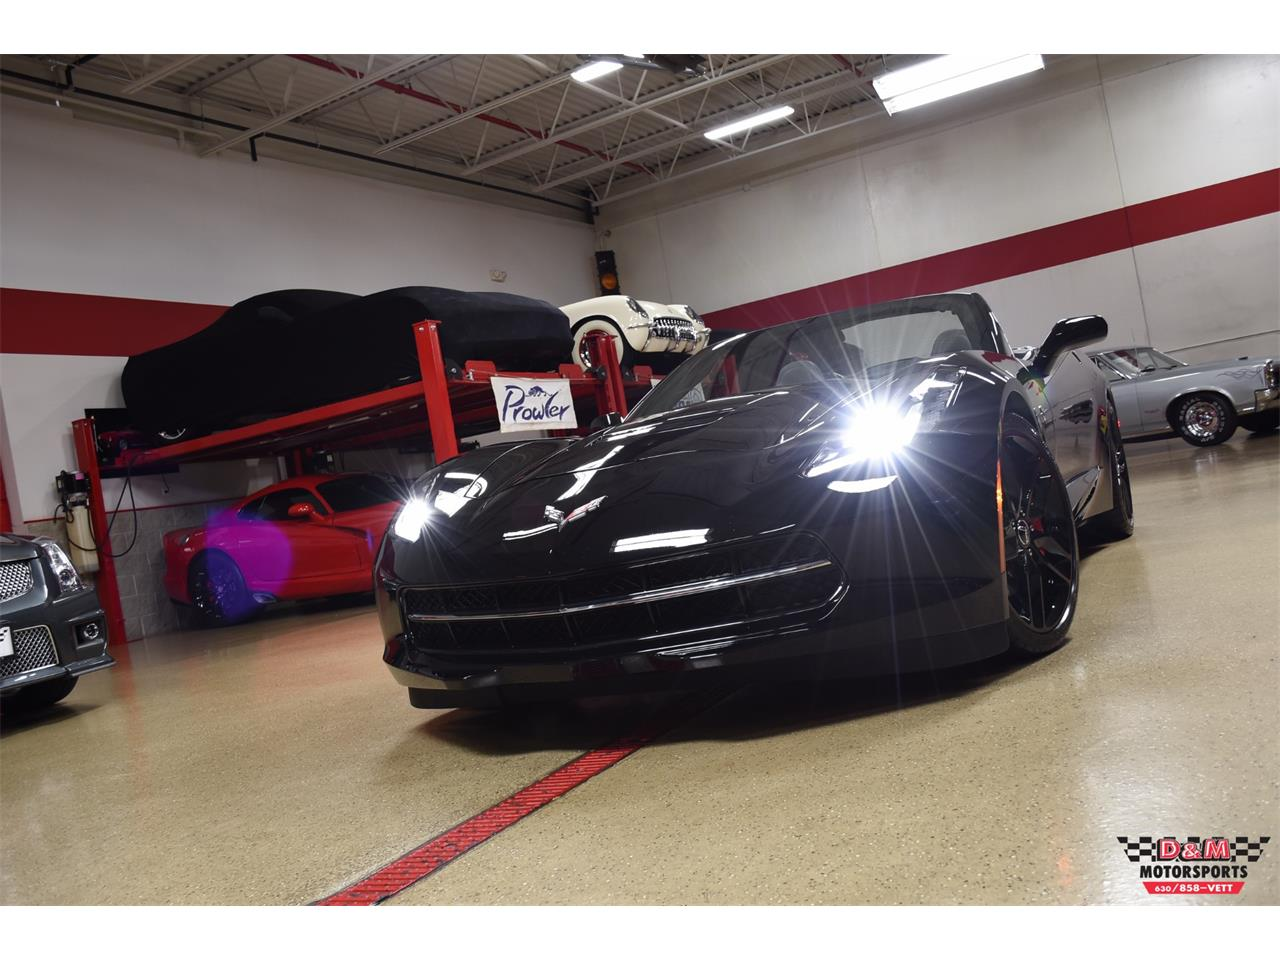 Large Picture of 2015 Corvette located in Glen Ellyn Illinois Offered by D & M Motorsports - PZ21